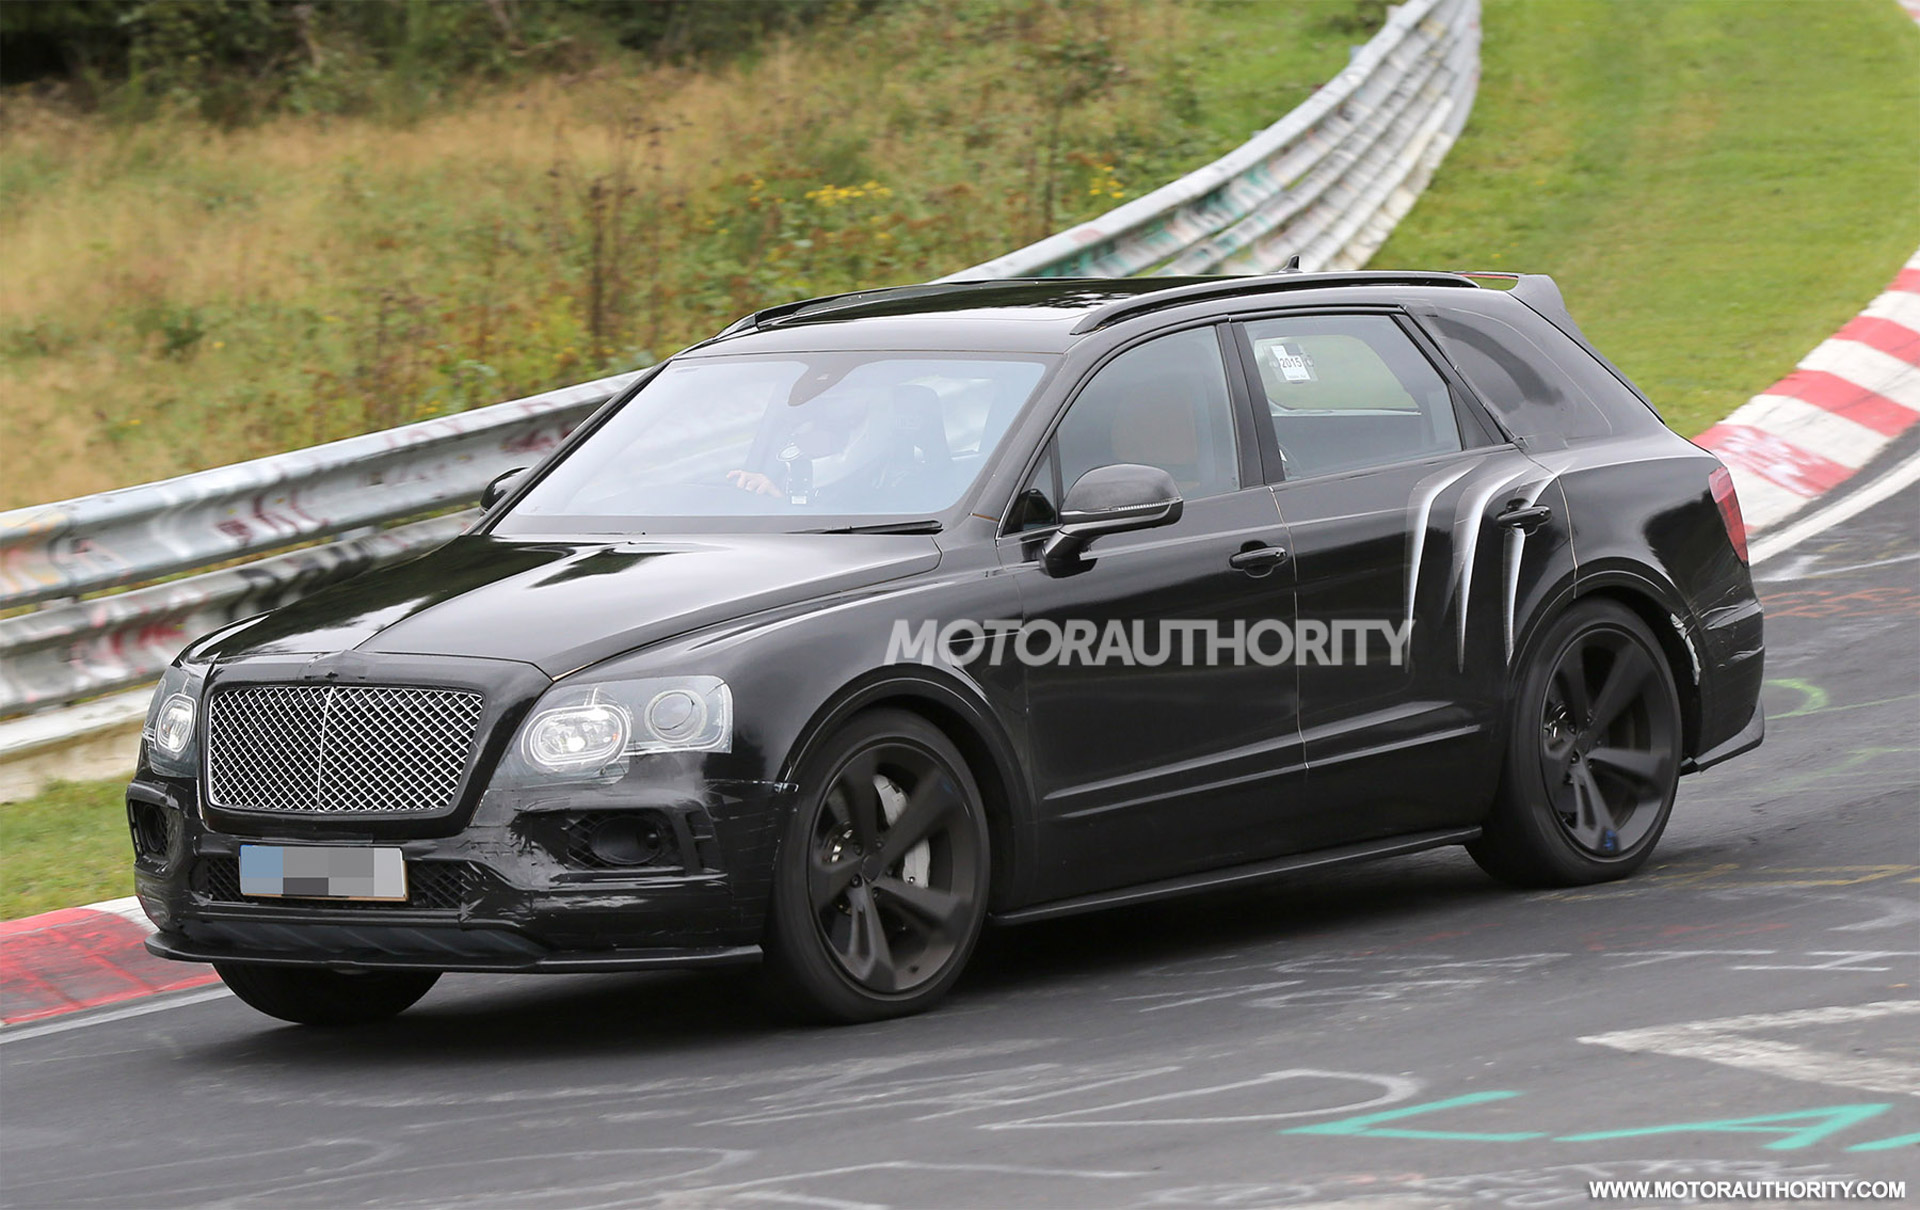 rc electric cars off road with 1085730 2018 Bentley Bentayga Speed Spy Shots on 281855735292 further 1085730 2018 Bentley Bentayga Speed Spy Shots in addition Ktm E Speed Production further 1061346 nissan Gives Update On Leaf Nismo Rc Electric Racer Video besides How To Make Your Rc Car Faster Electric Cars.